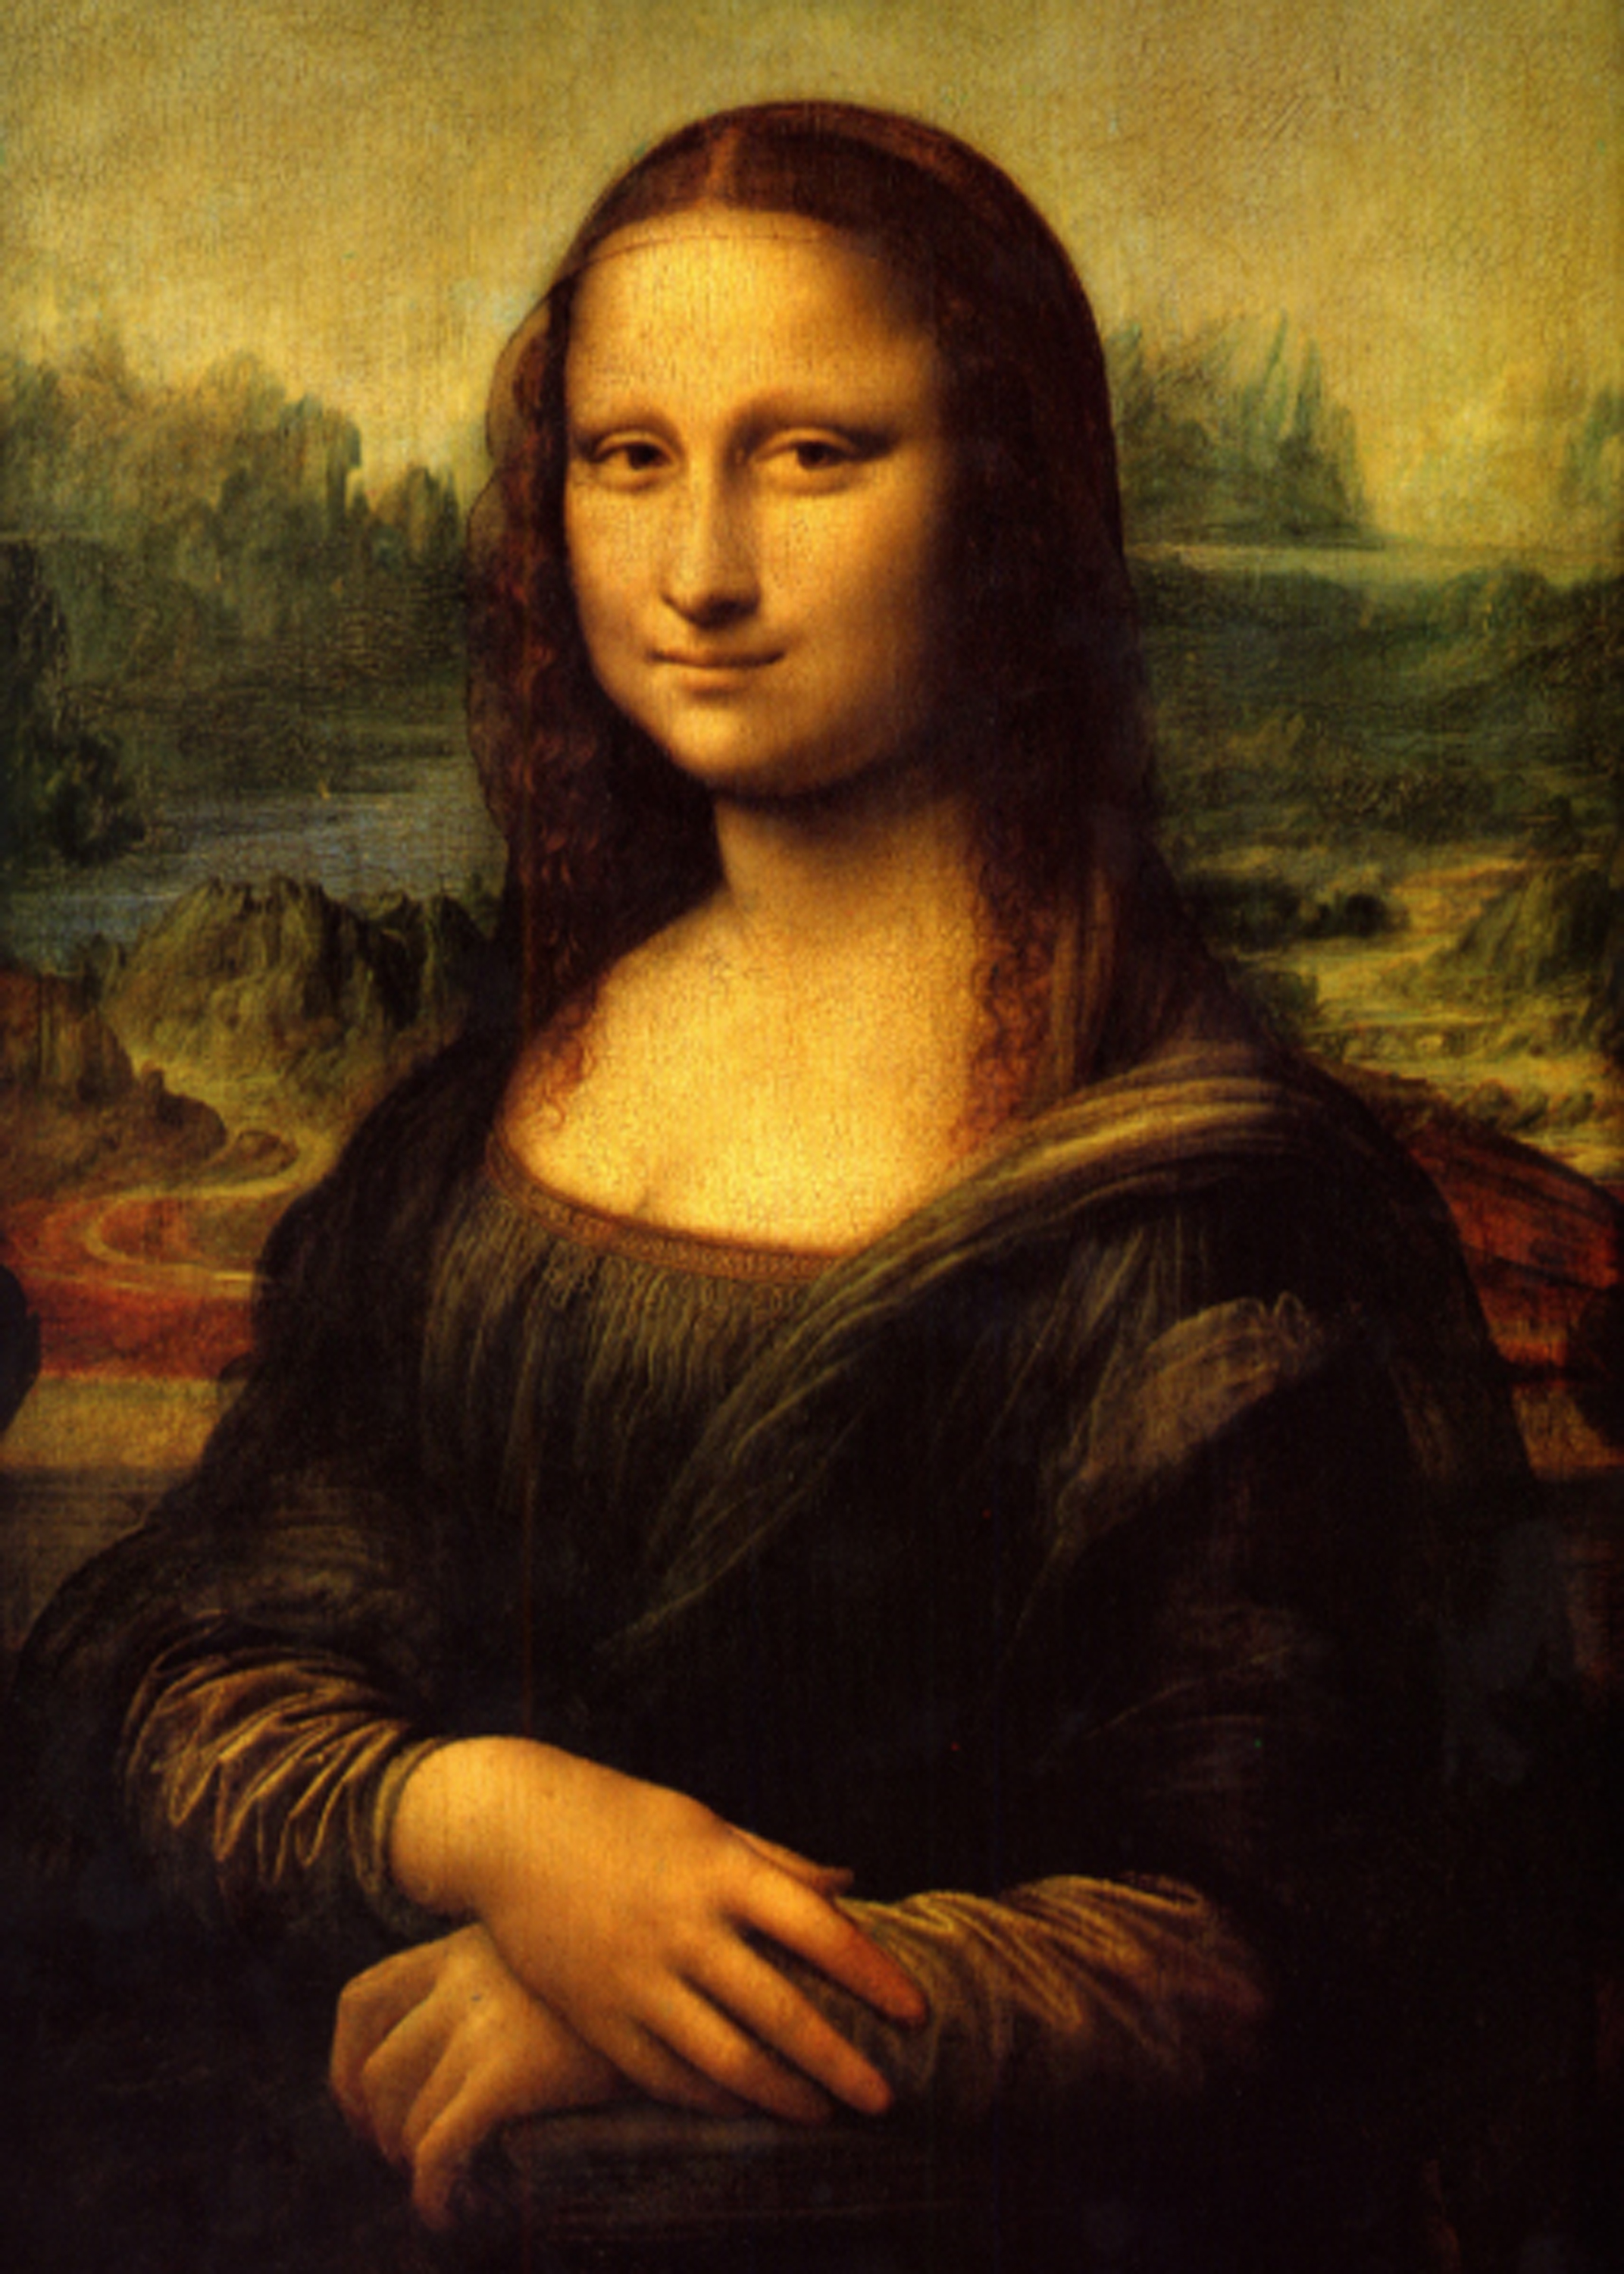 1. Picture of the Mona Lisa - To begin, a screenshot of DaVinci's Mona Lisa was pulled from the web for reference. Colors are adjusted as best as possible and a digital proof is printed as a master reference.